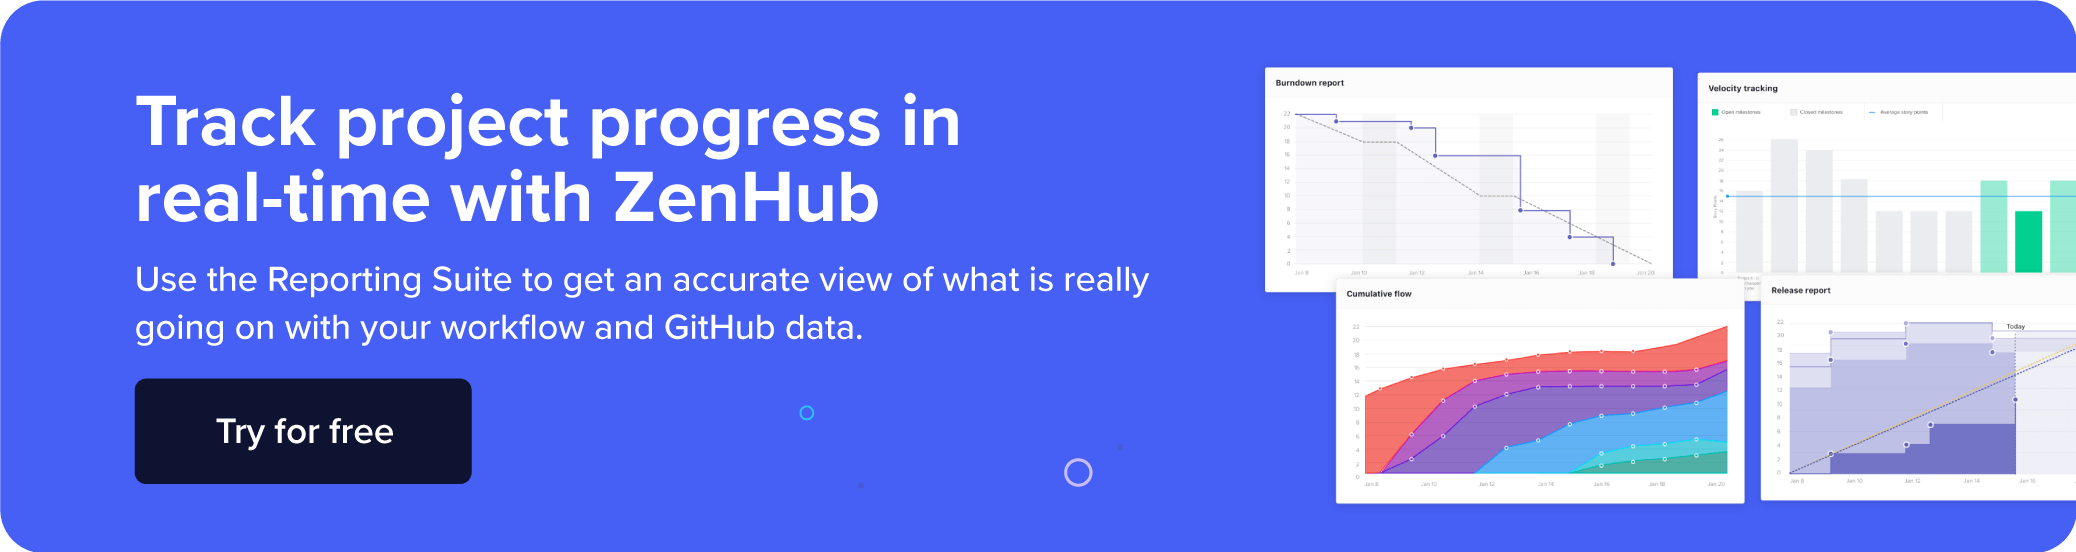 Describes how to use ZenHub's Reporting Suite to get an accurate view of what's going on with your workflow and GitHub data.